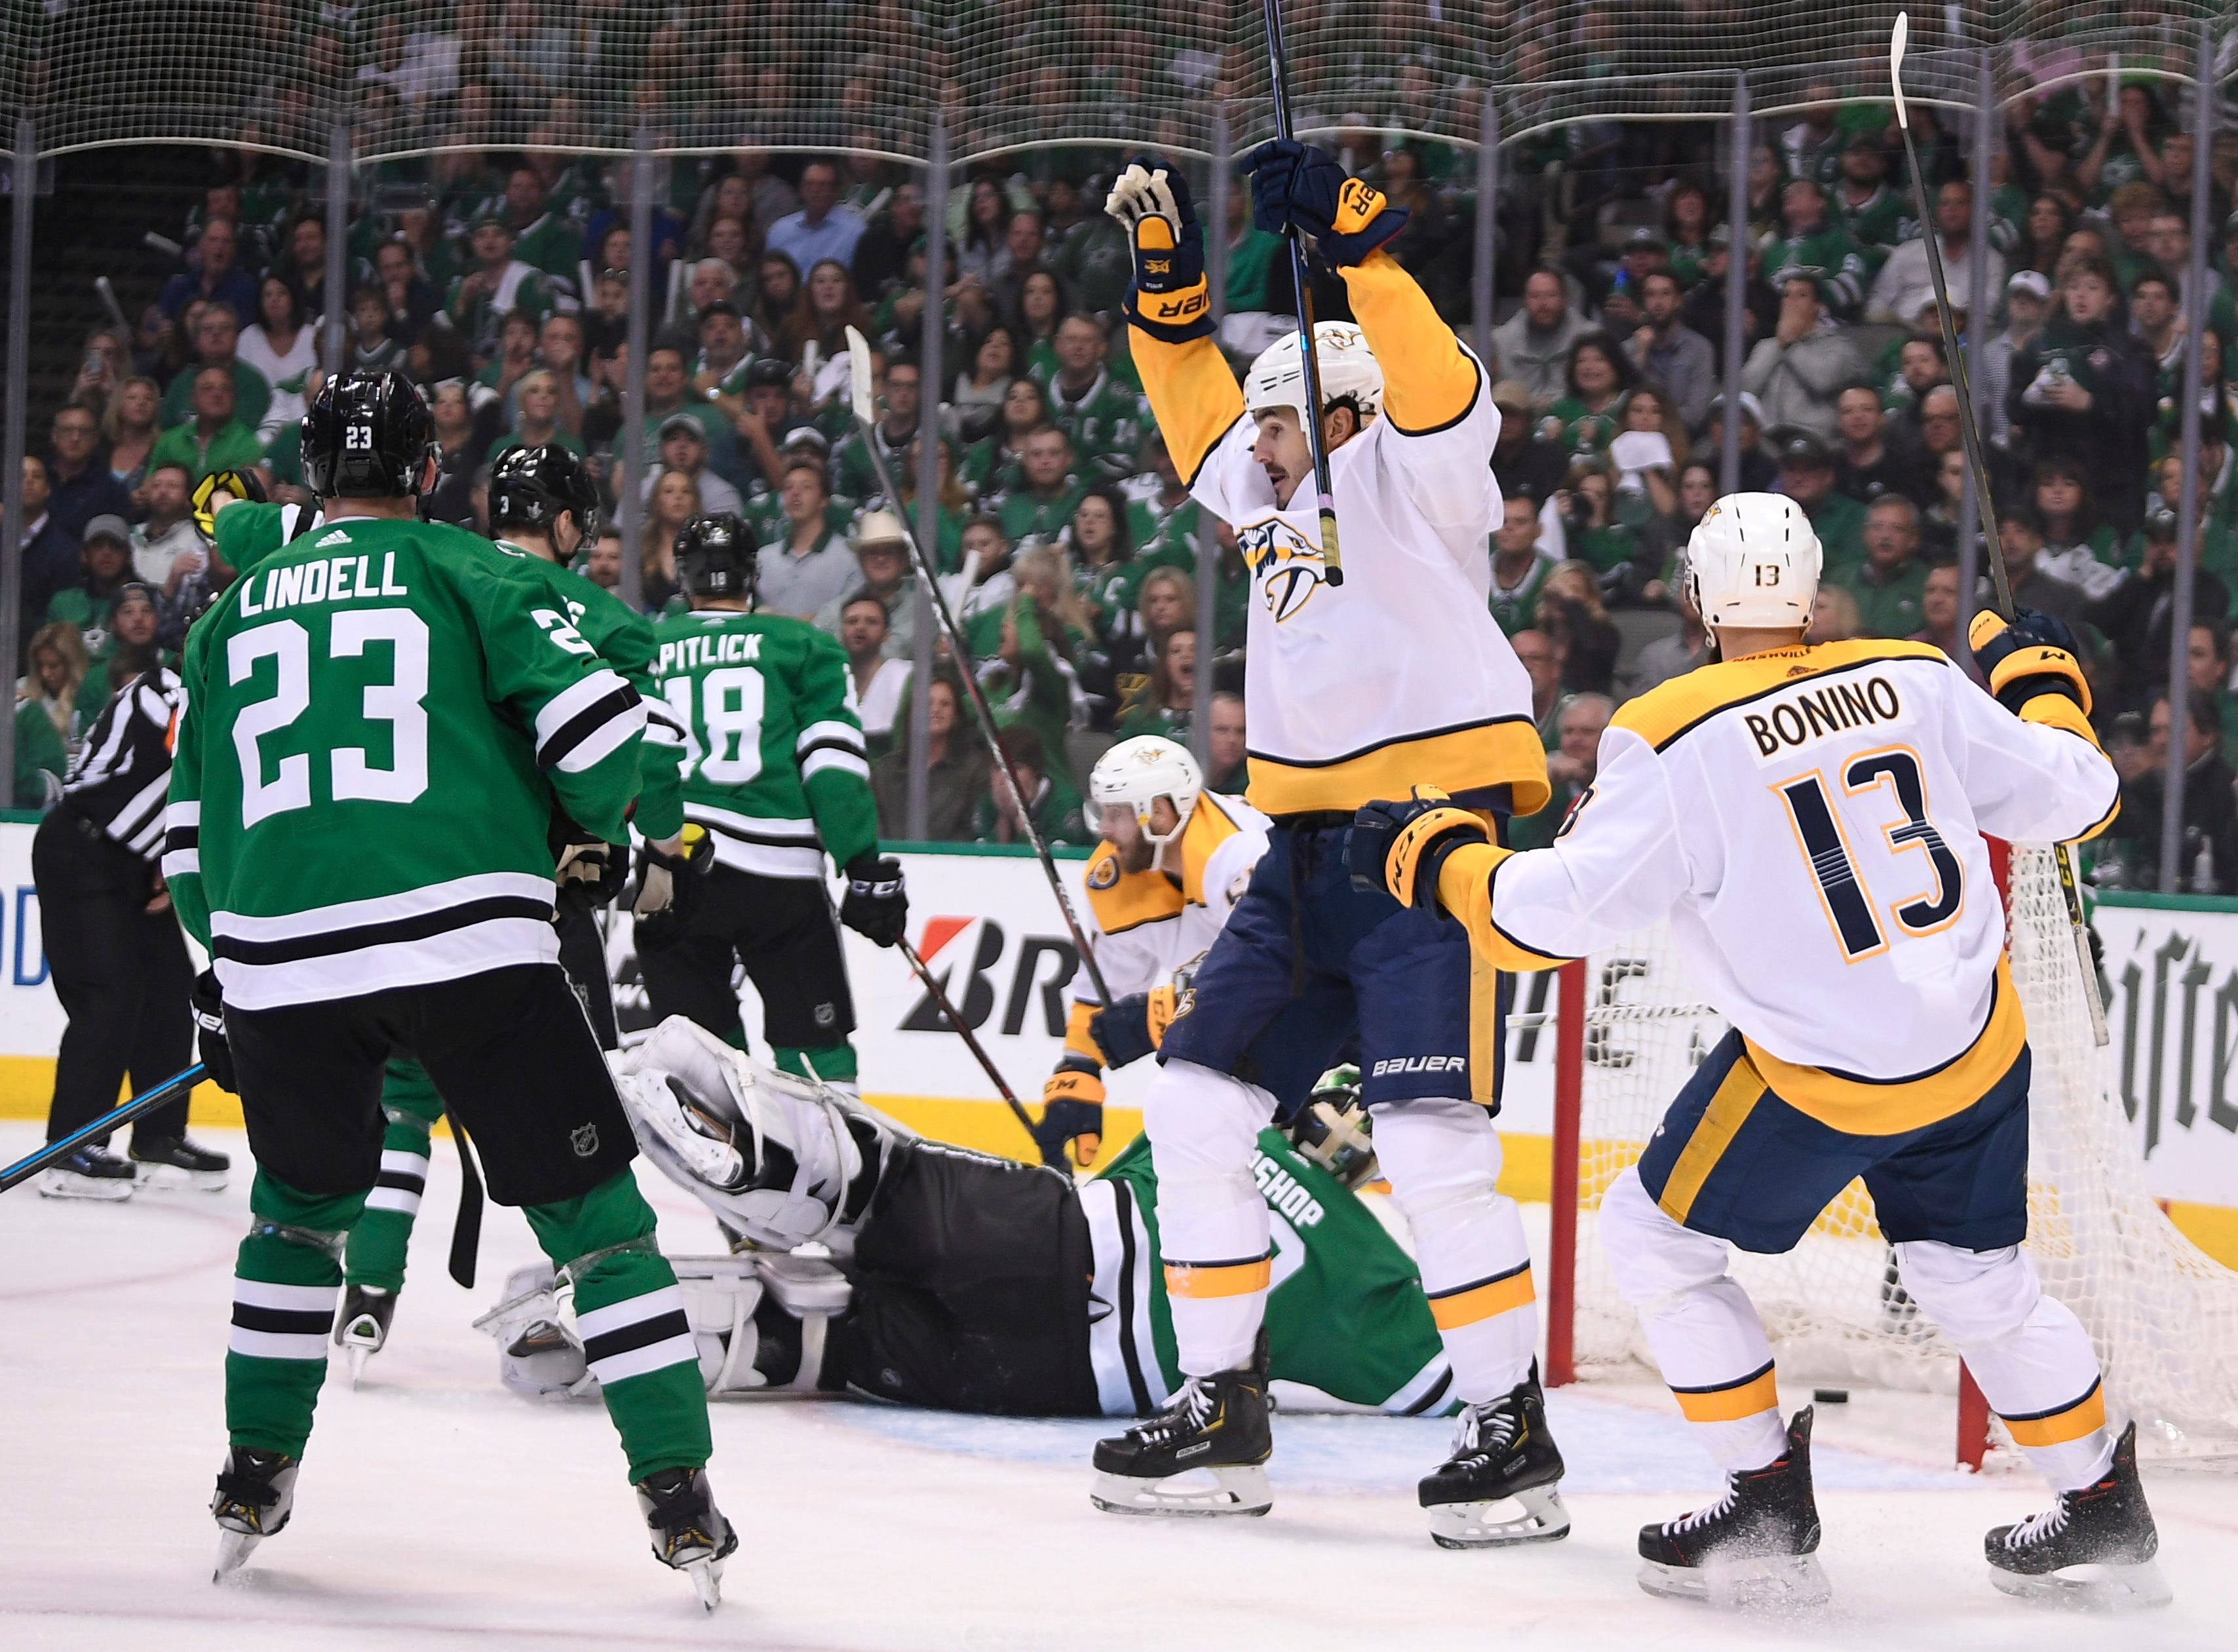 Nashville Predators center Brian Boyle (11) celebrates the goal by left wing Austin Watson (51) during the first period of the divisional semifinal game at the American Airlines Center in Dallas, Texas, Monday, April 22, 2019.